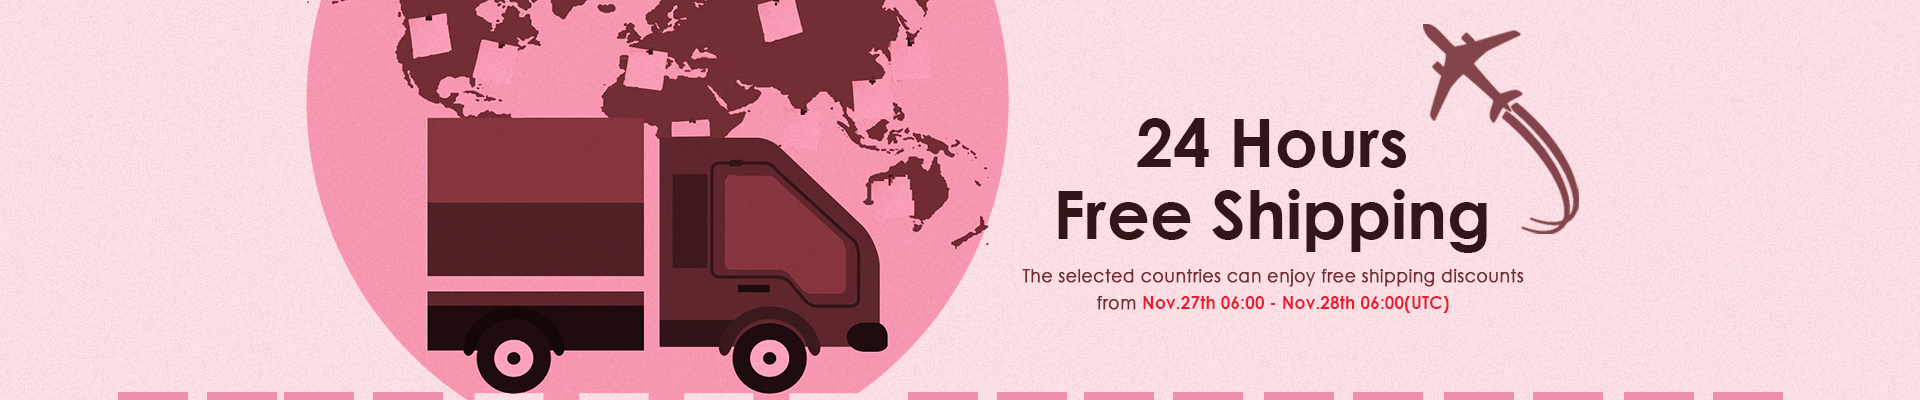 24 hours free shipping